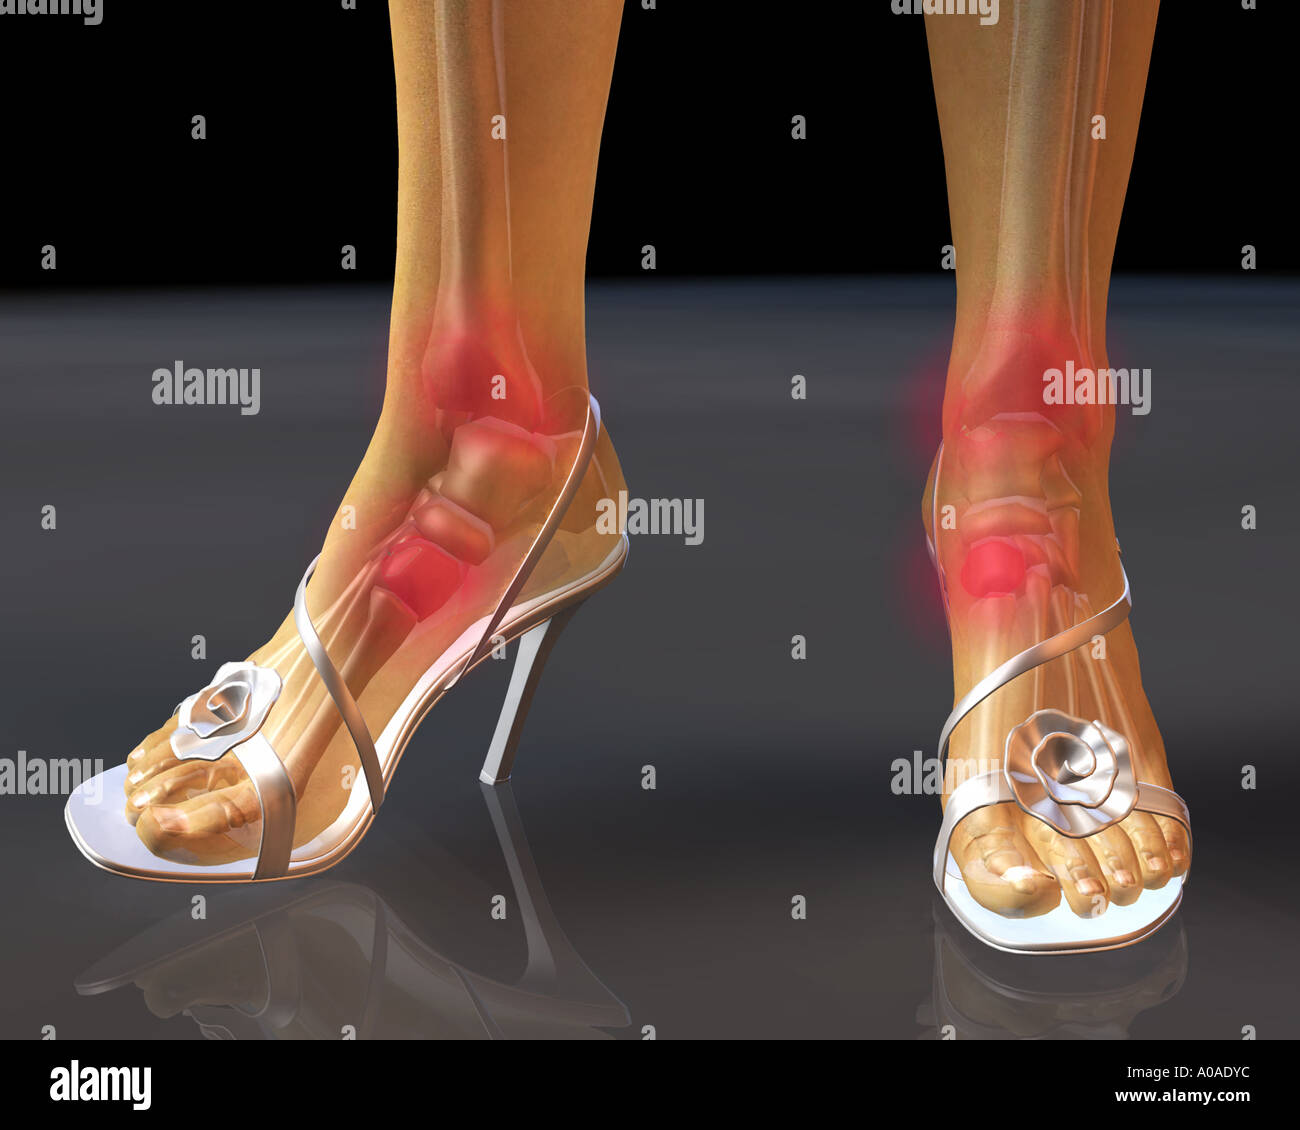 hight resolution of illustrative diagram showing potential hot spots in skeletal structure of feet when wearing high heel shoes